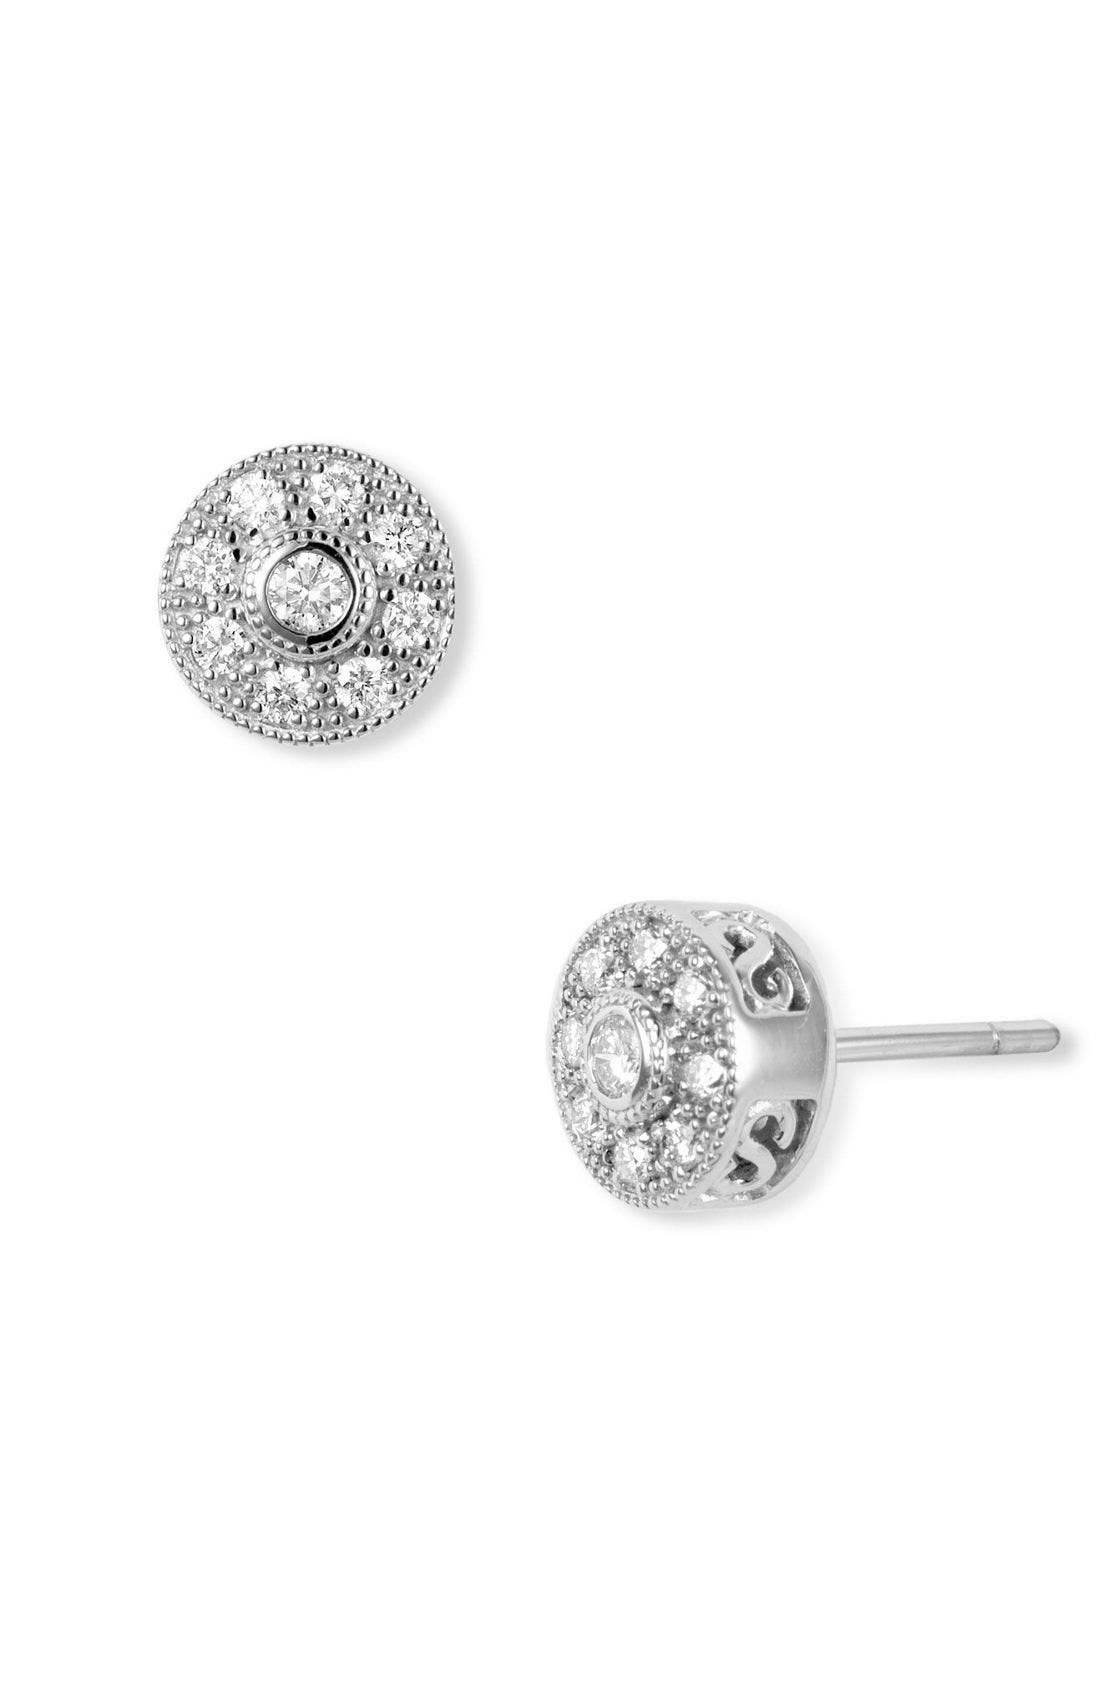 Main Image - ALOR® Diamond Stud Earrings